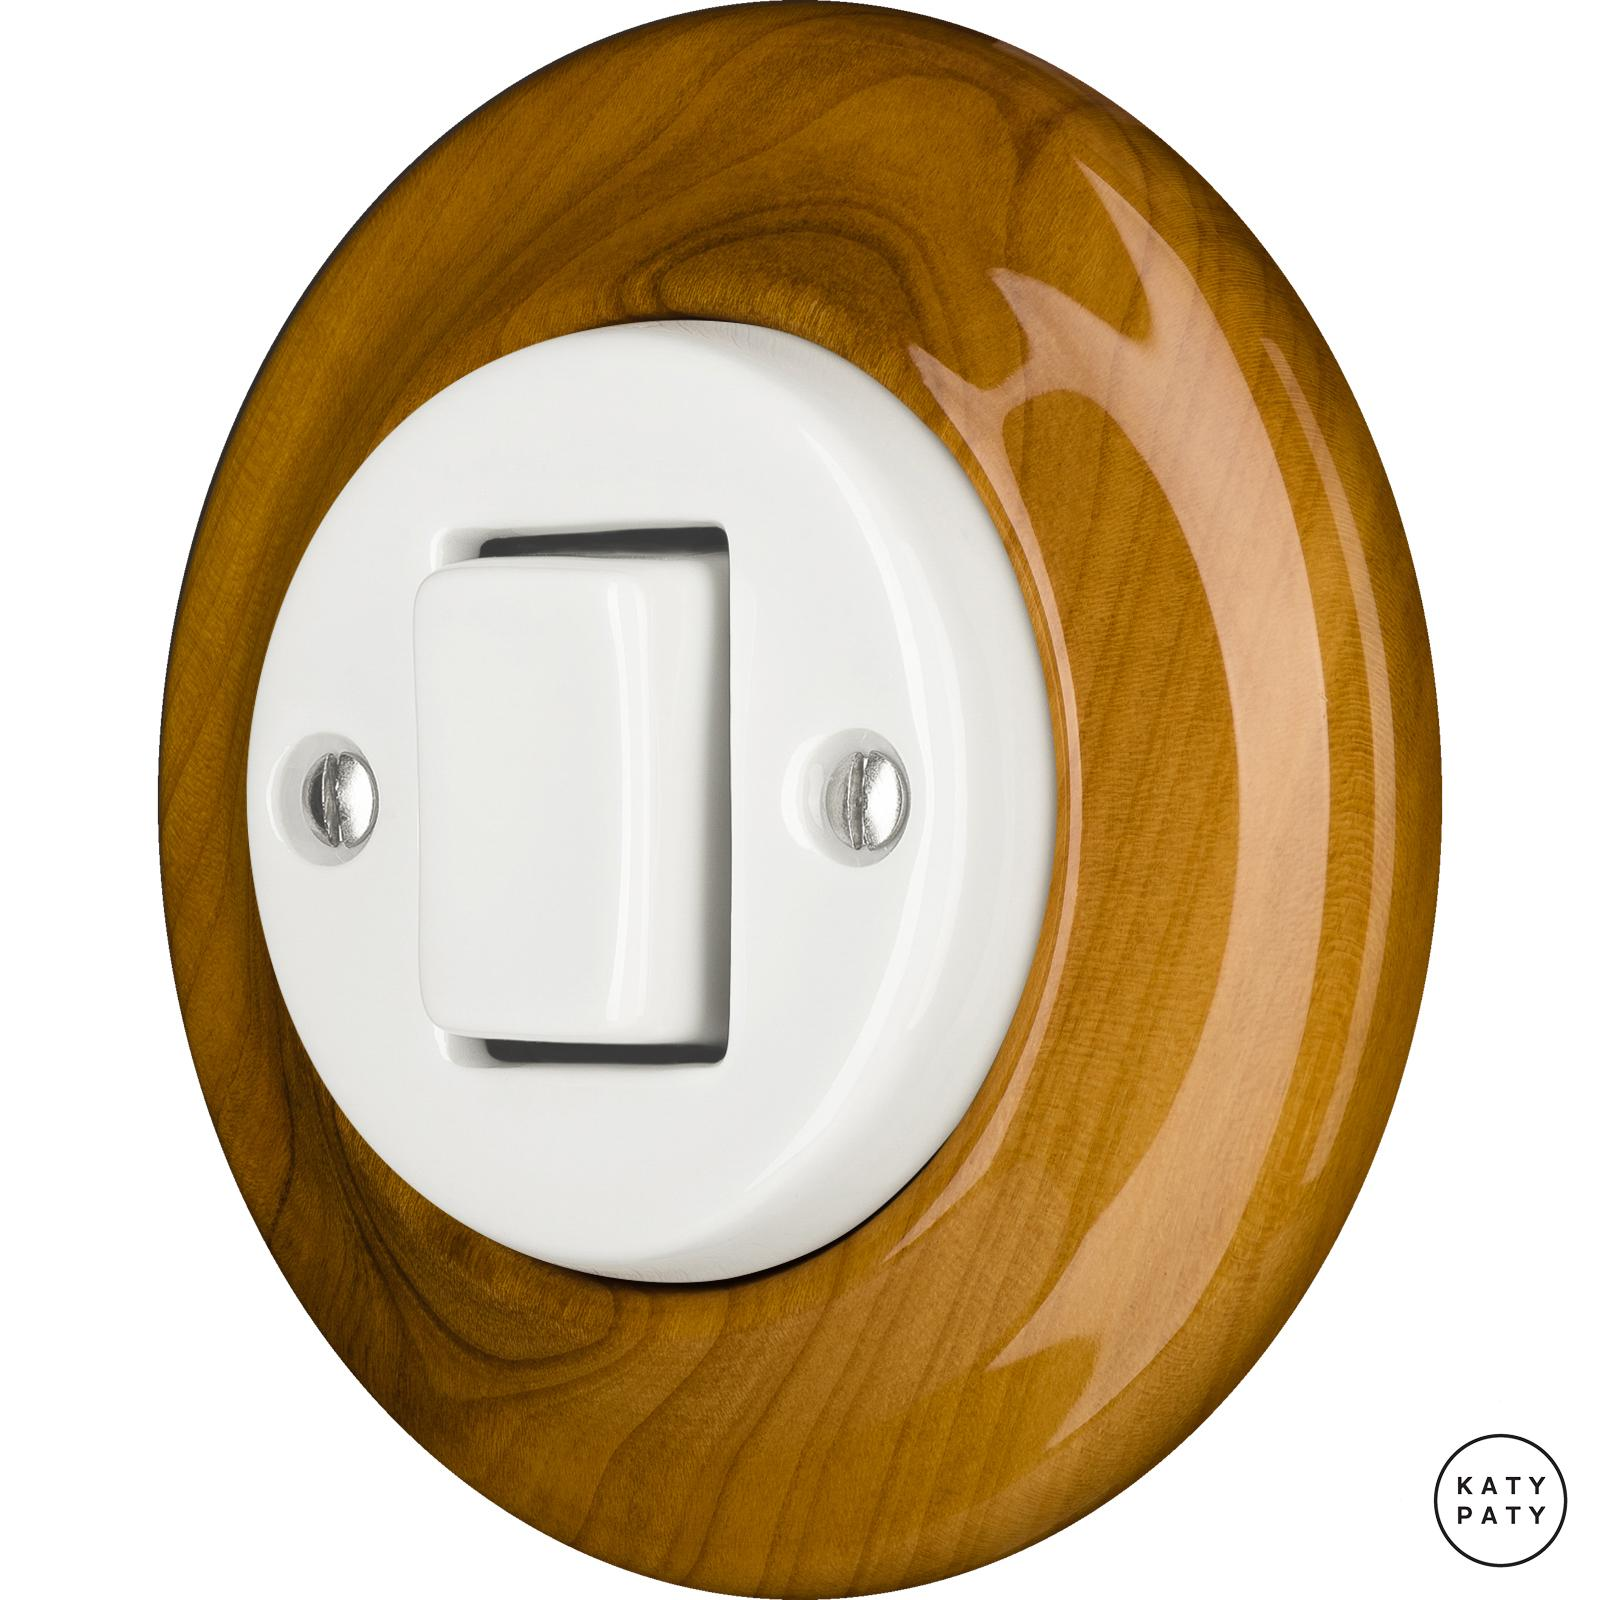 Porcelain switches - a 1 key - FAT ()  - PADELUS | Katy Paty